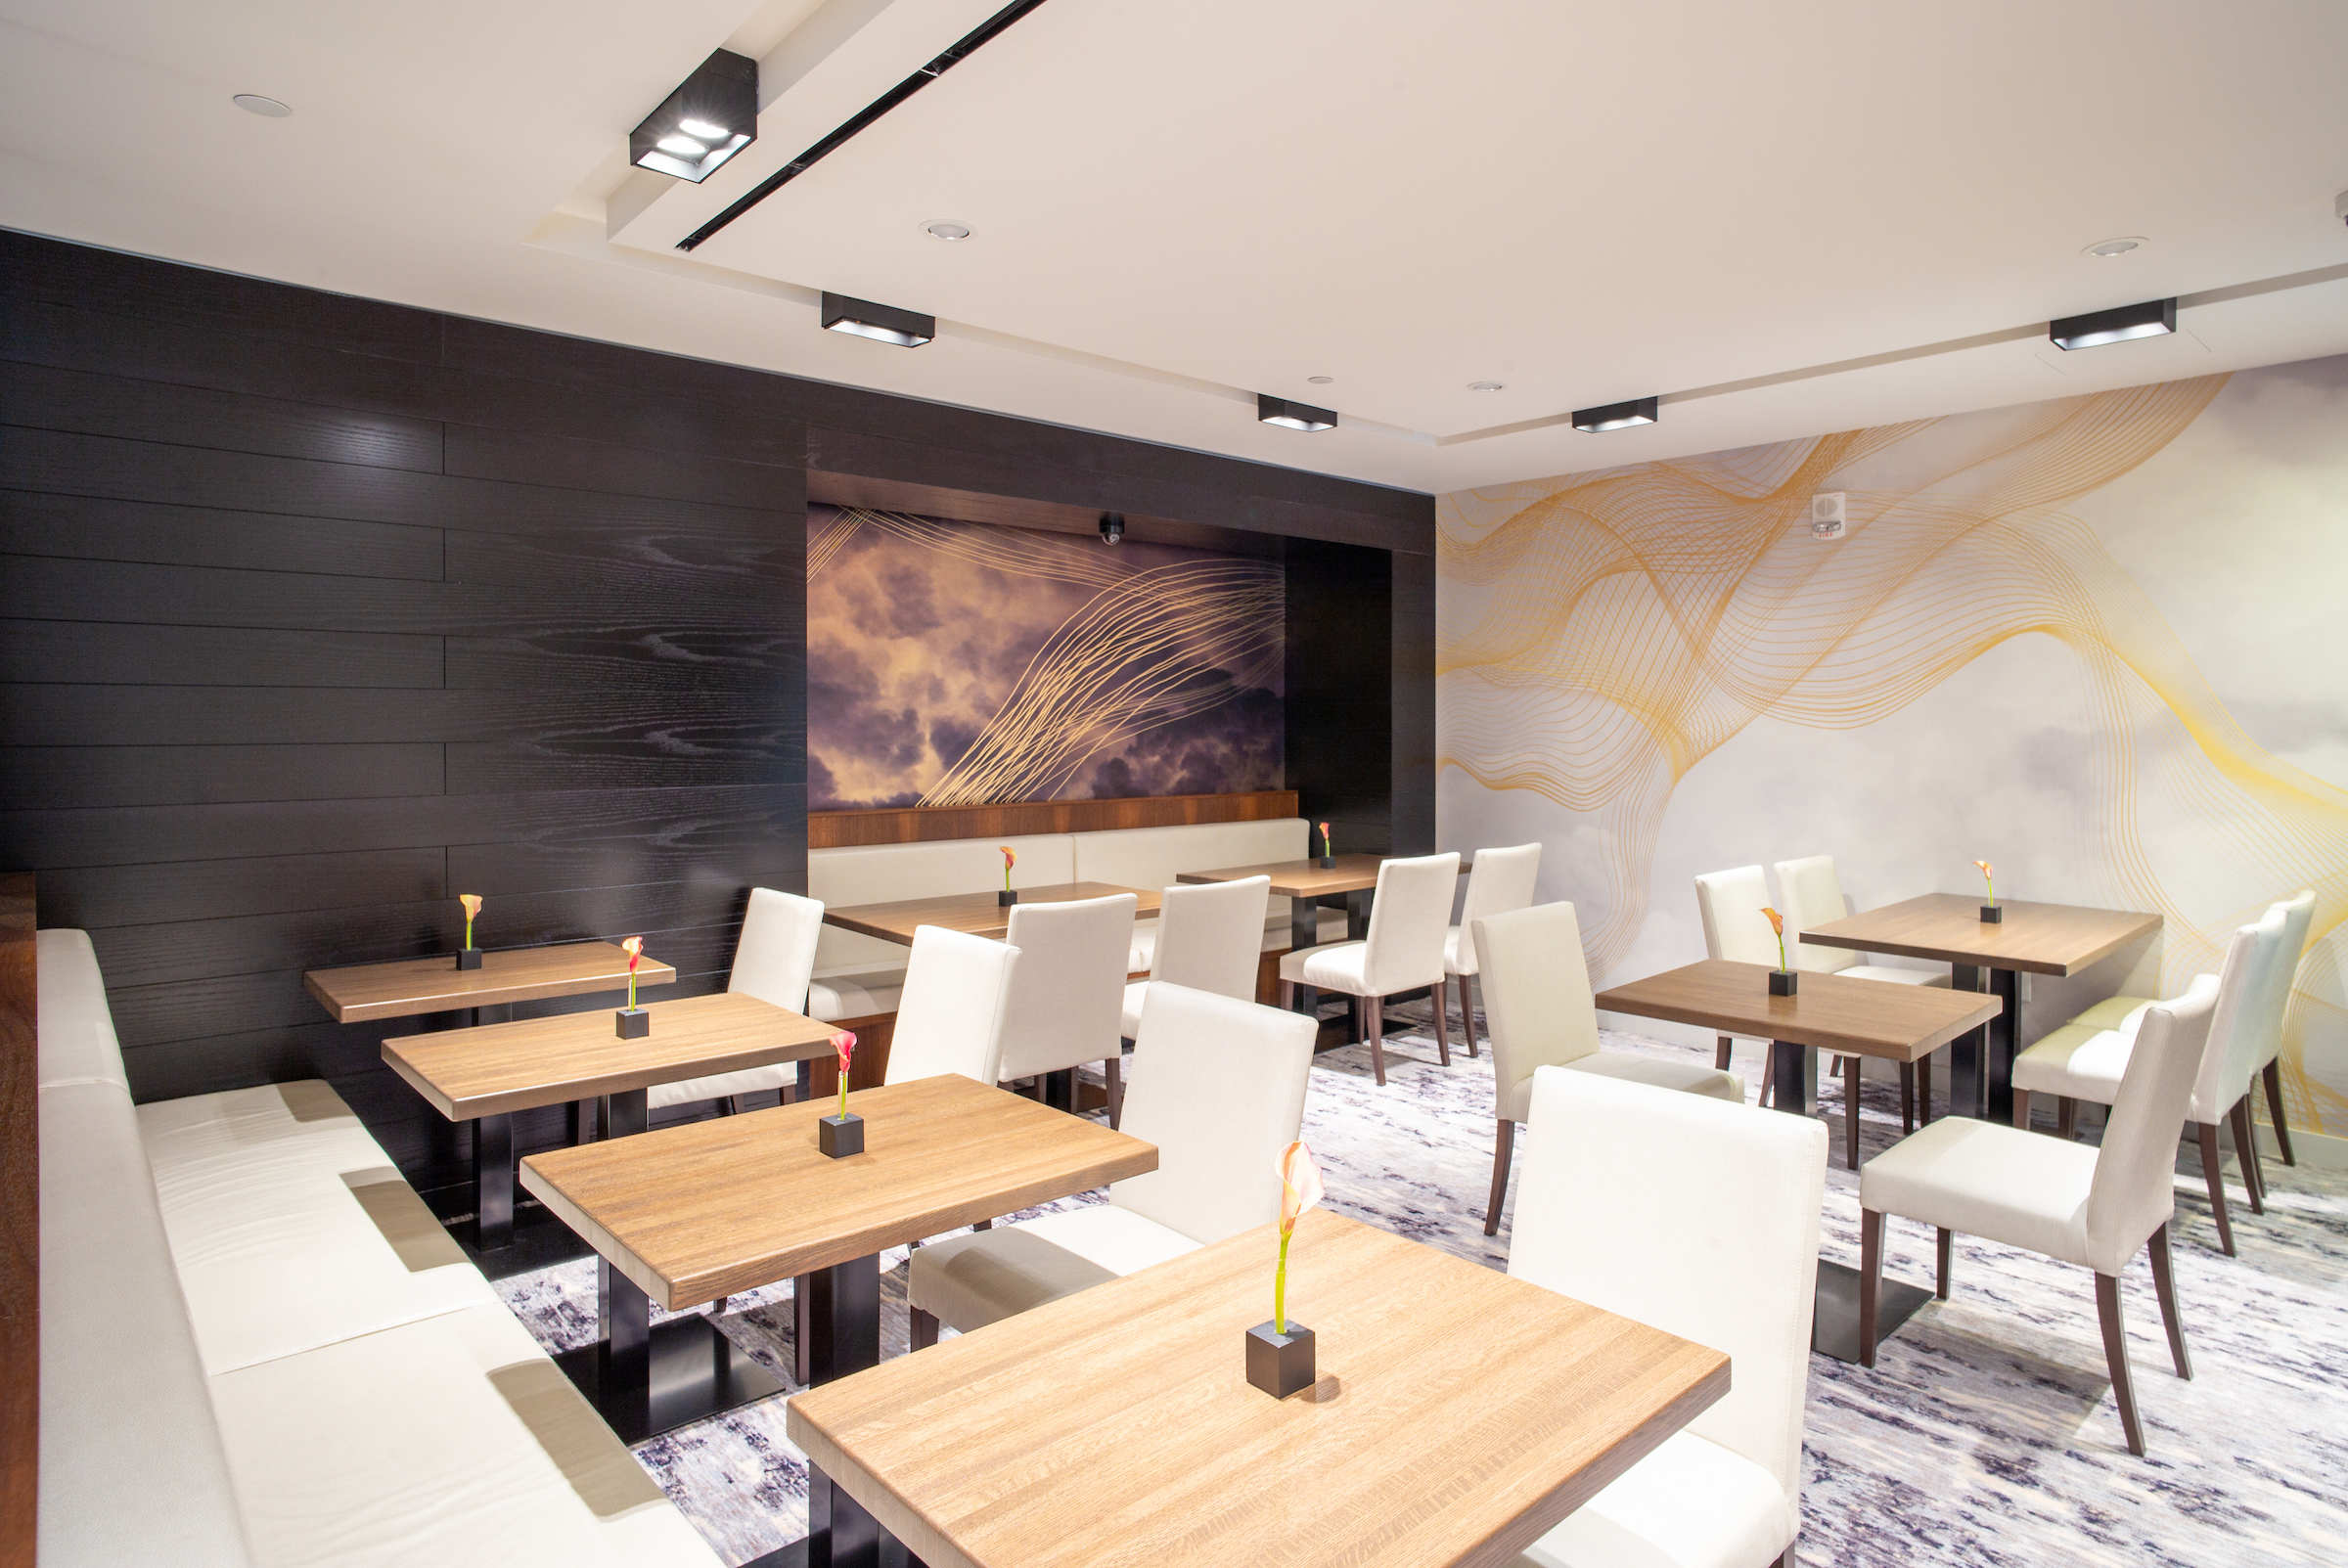 The dining room at Sushi Nakazawa. (Image: Nick Solares)